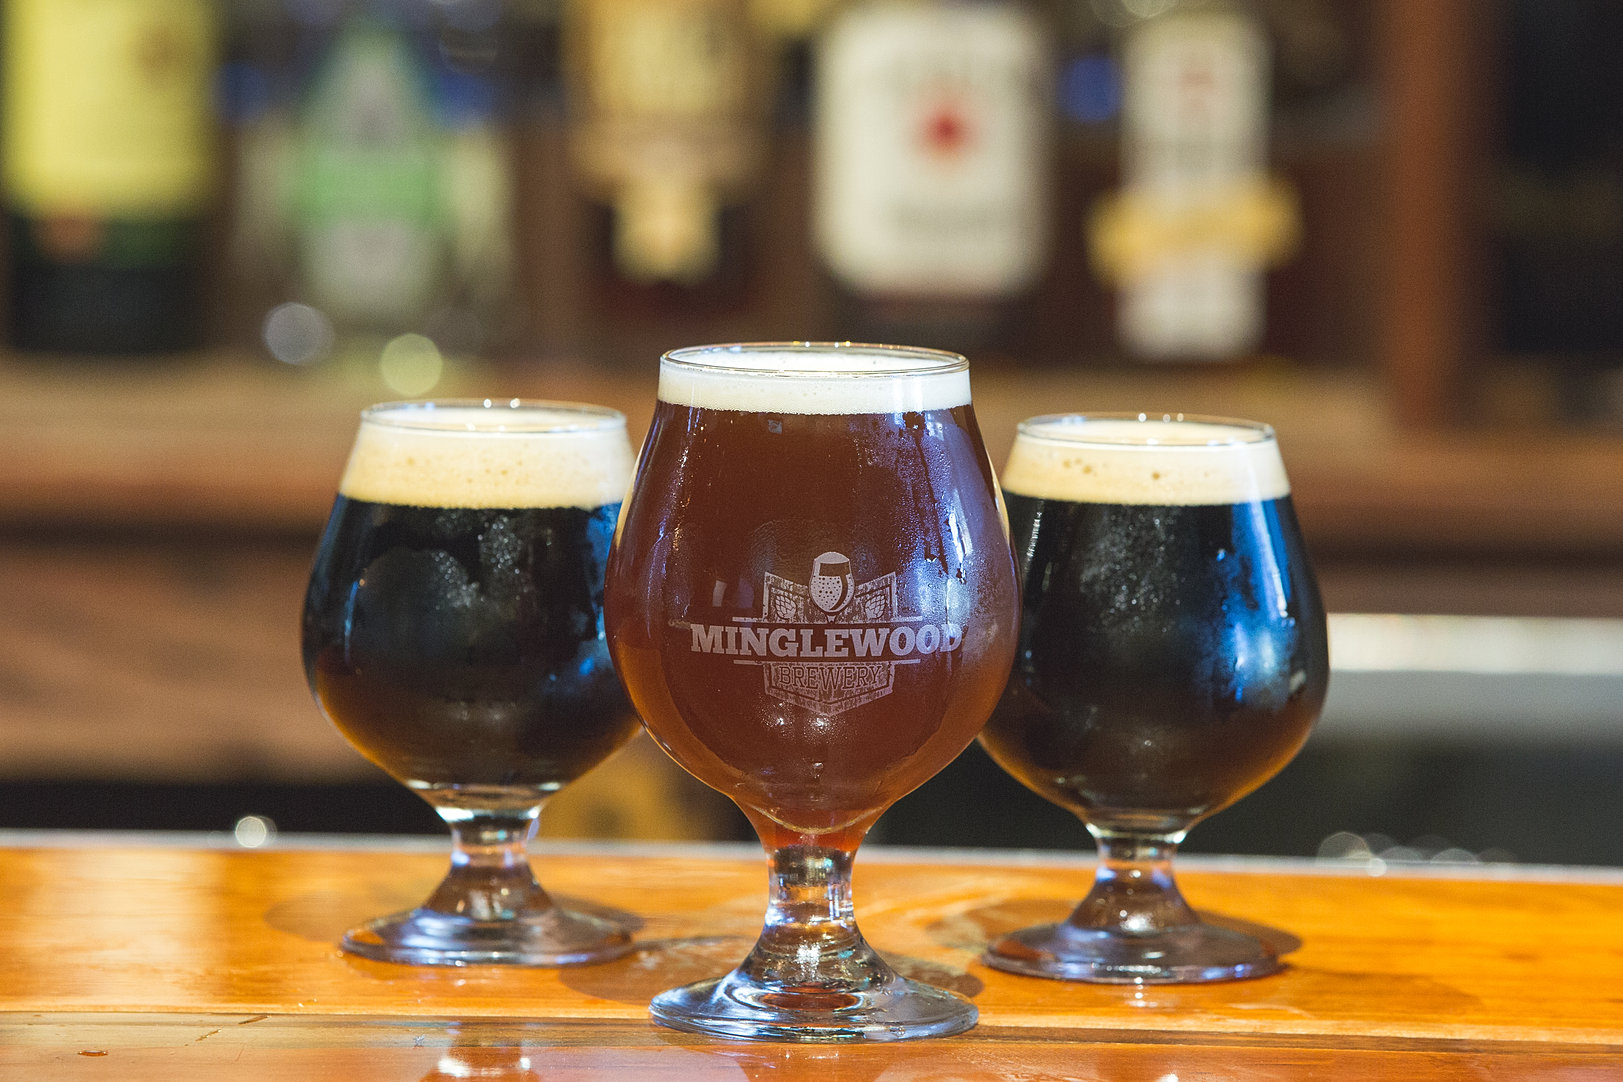 Le Meilleur Minglewood Brewery Cape Girardeau Craft Beer Pizza Ce Mois Ci